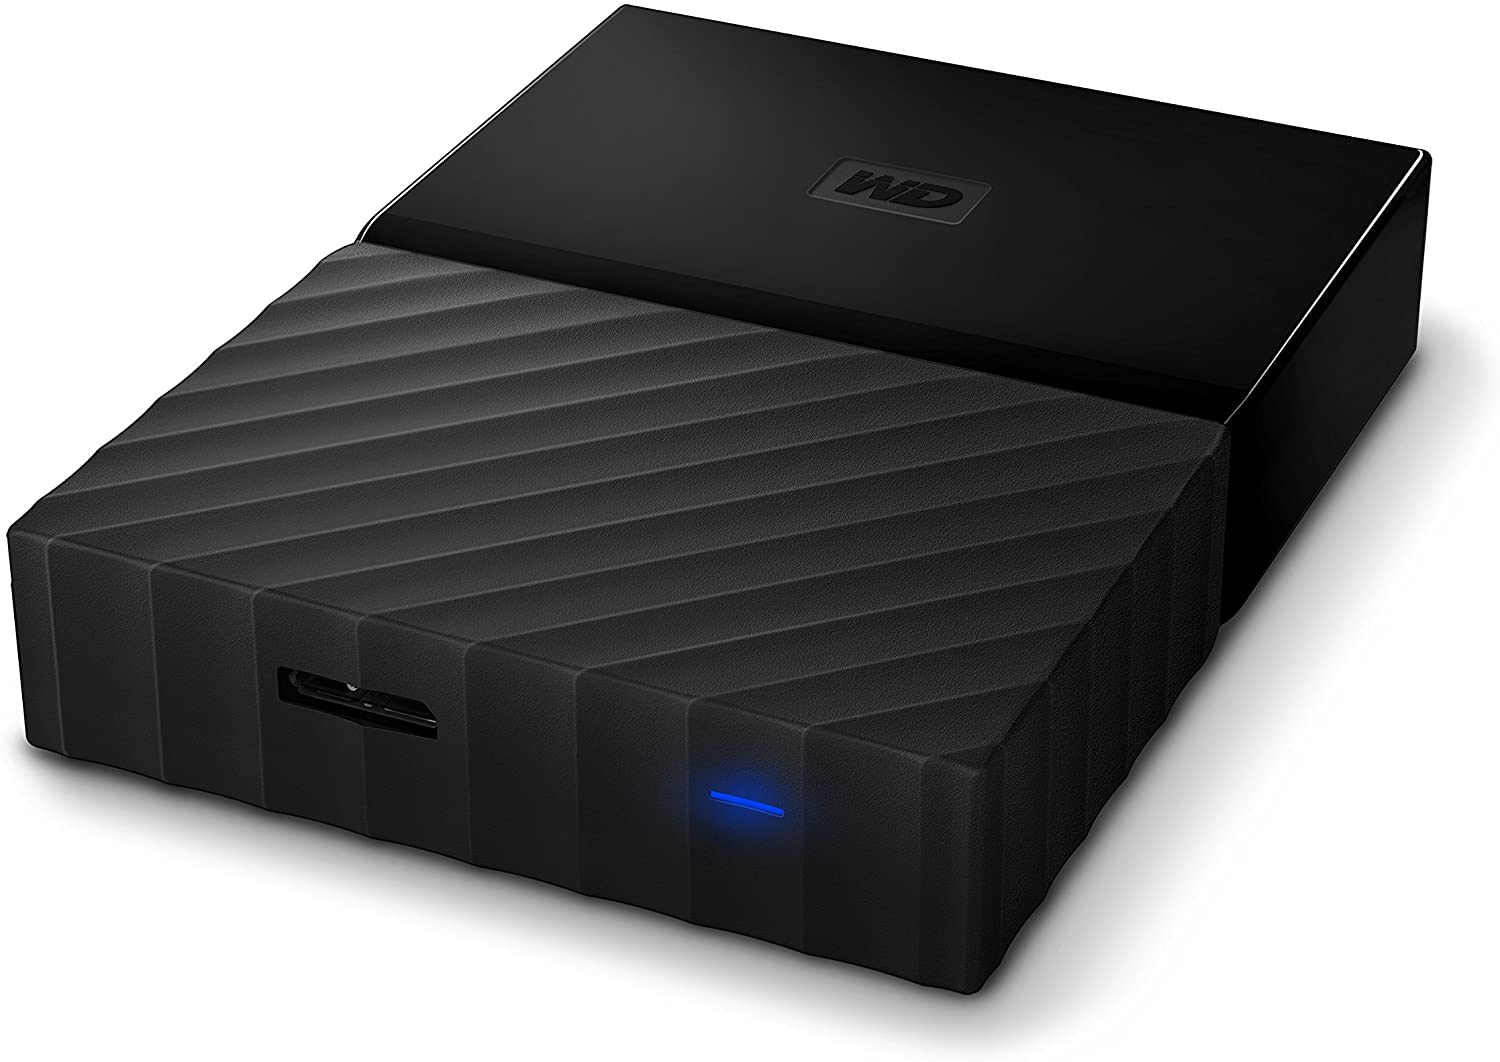 Review: WD 4TB My Passport Game Storage External Hard Drive 1